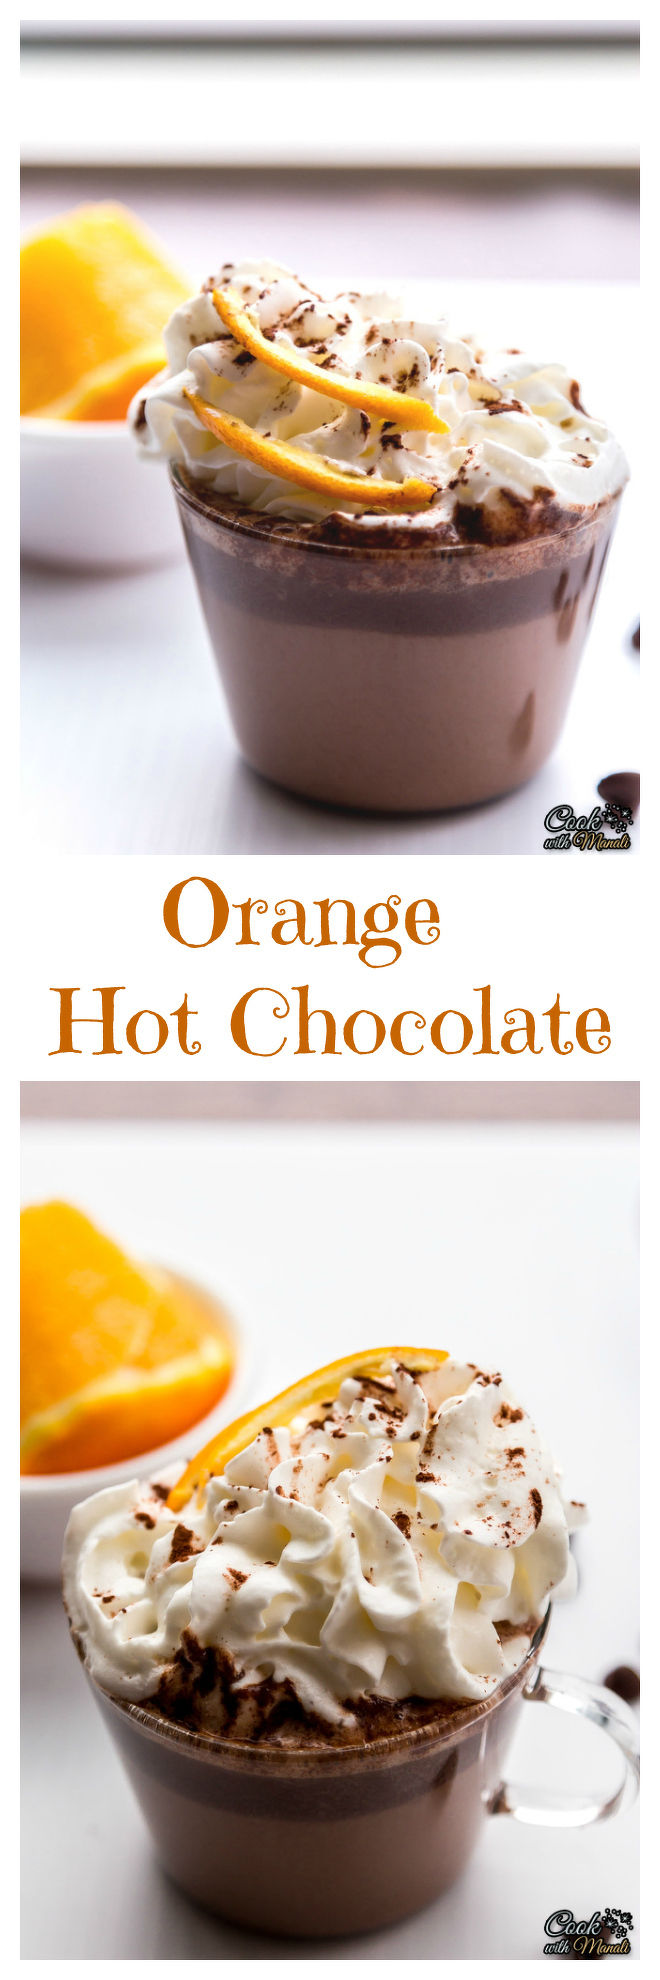 Orange Hot Chocolate - Cook With Manali